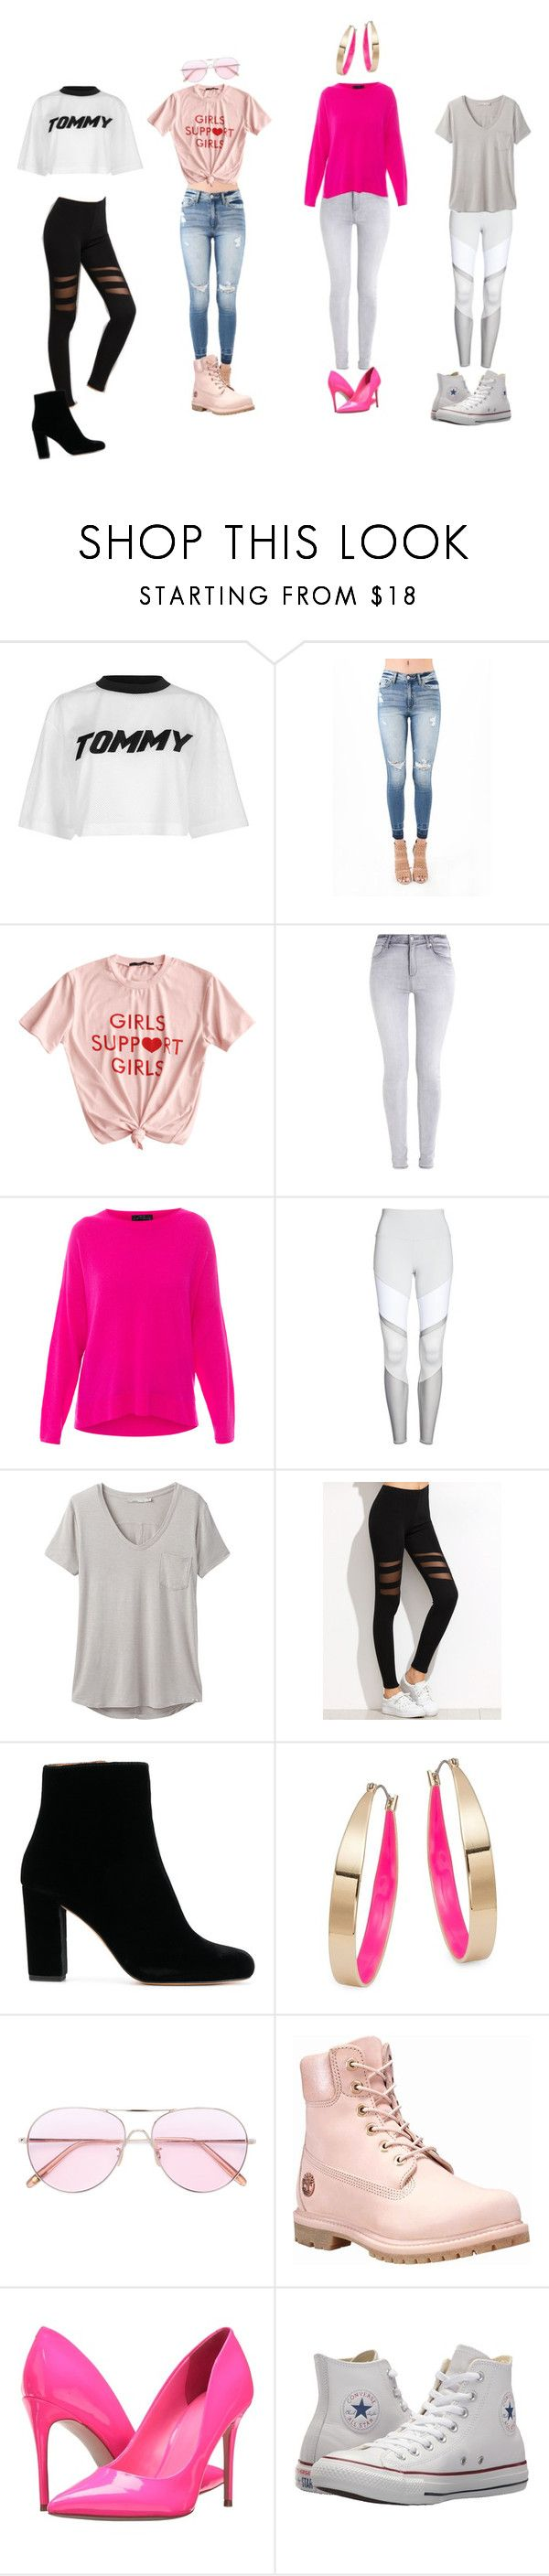 """""""Untitled #8"""" by winkelmiran ❤ liked on Polyvore featuring Tommy Hilfiger, Abercrombie & Fitch, MARC CAIN, Alo, prAna, IRO, Design Lab, Oliver Peoples, Timberland and GUESS"""